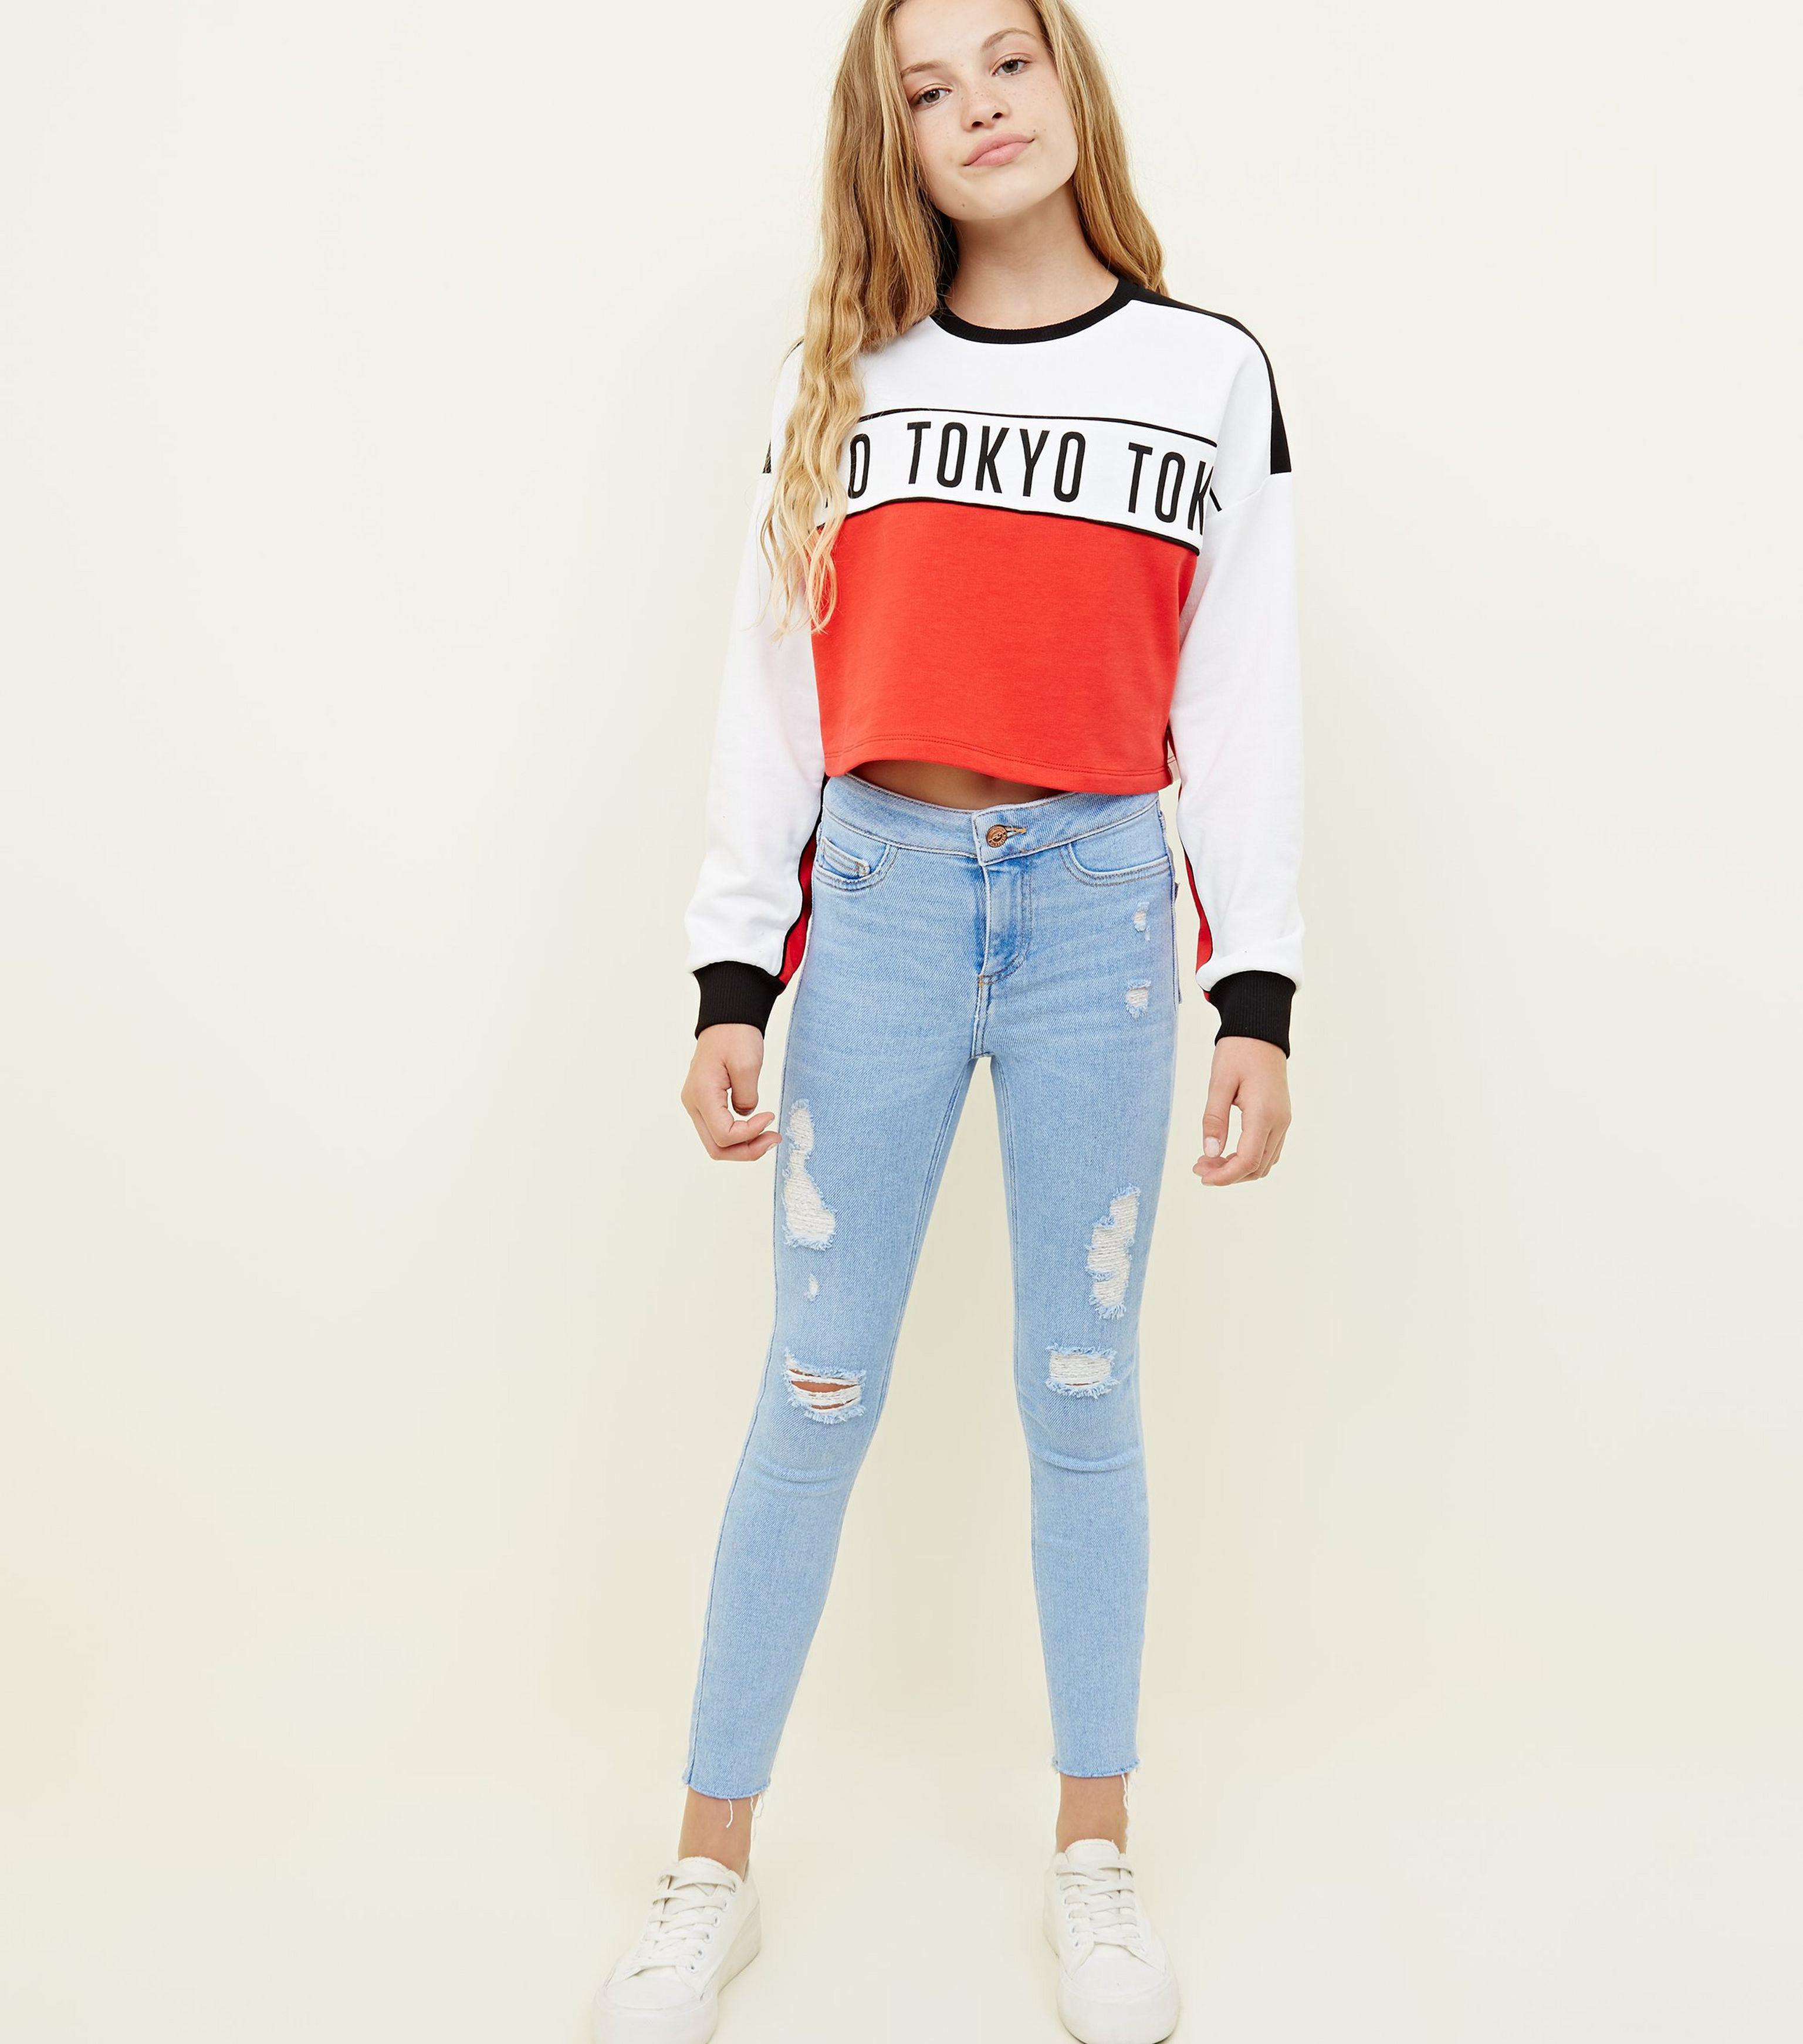 13dc3371d7ea New Look Girls Pale Blue High Waist Ripped Super Skinny Jeans in ...